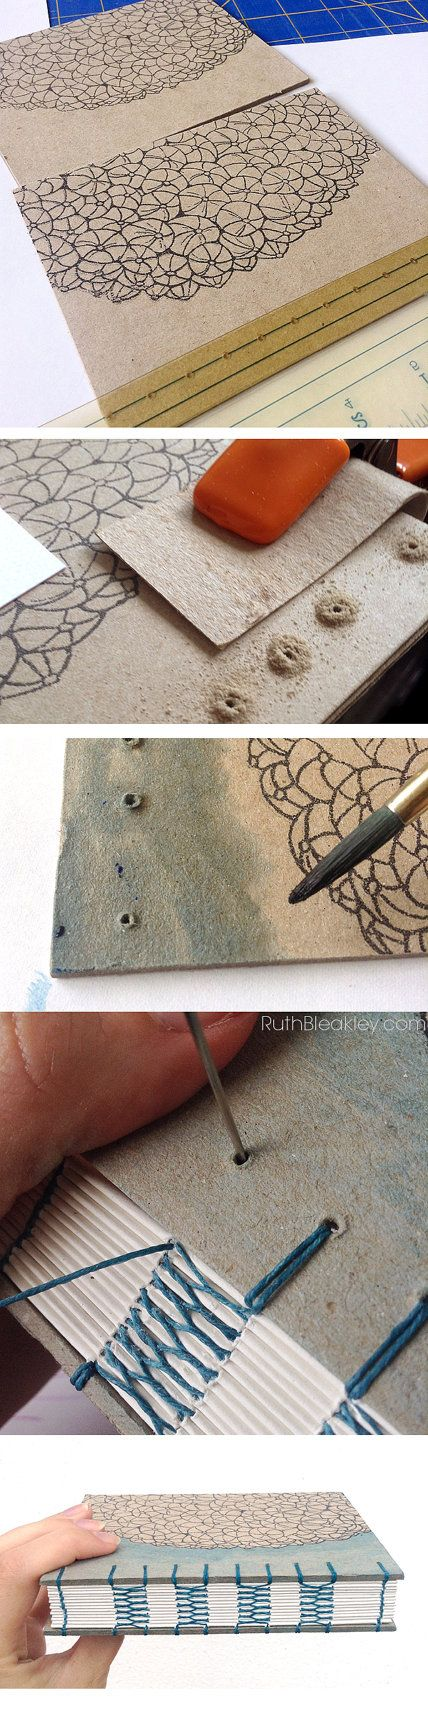 Coptic Stitch Journal with French Link Stitch by RuthBleakley